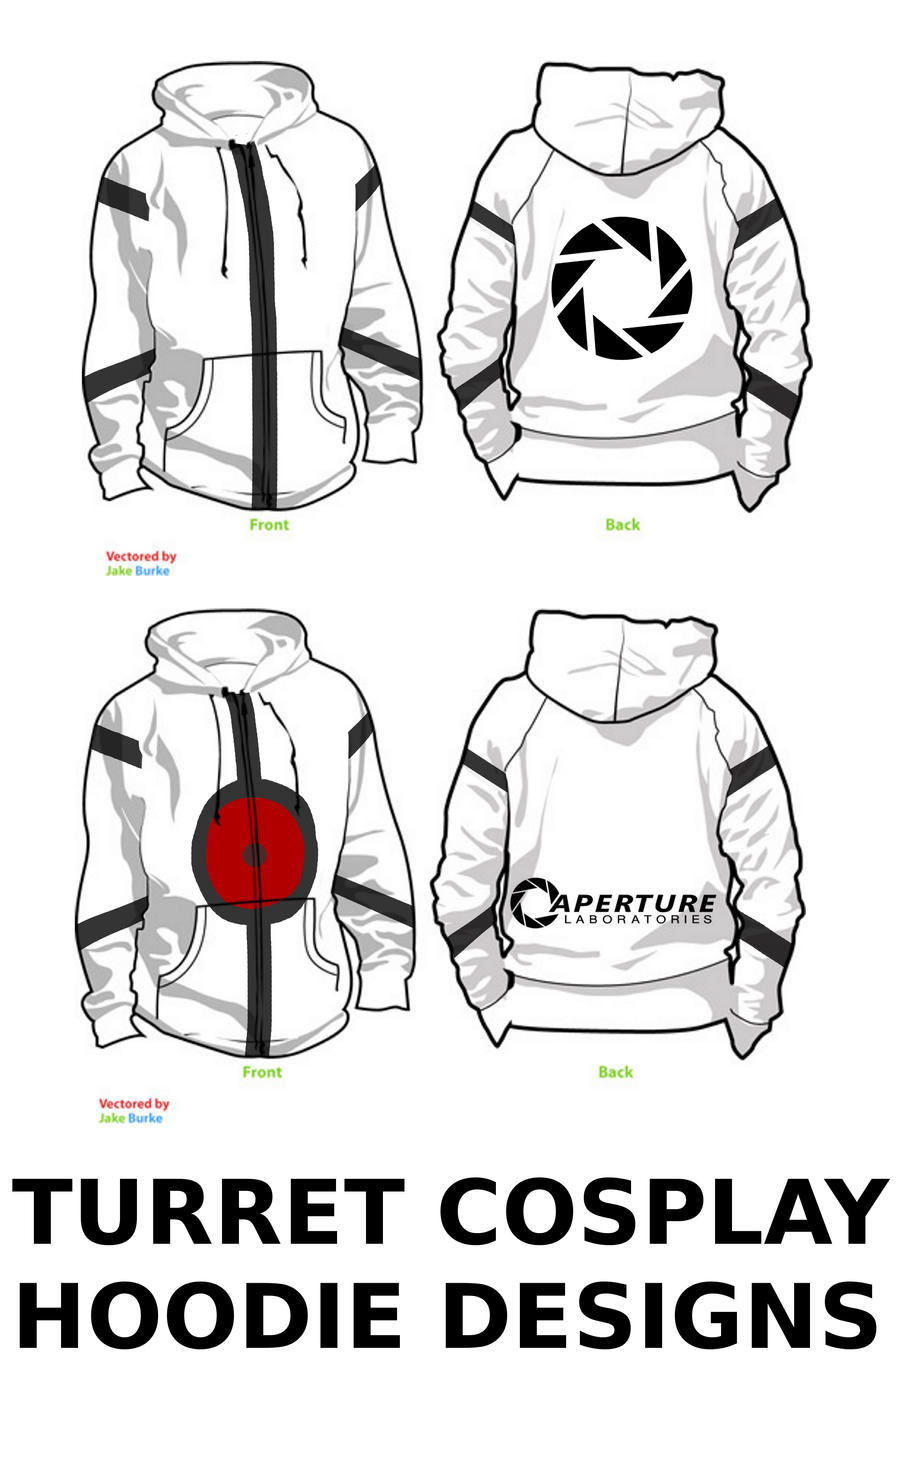 turret cosplay hoodie designs by doodles4cash turret cosplay hoodie designs by doodles4cash - Hoodie Design Ideas